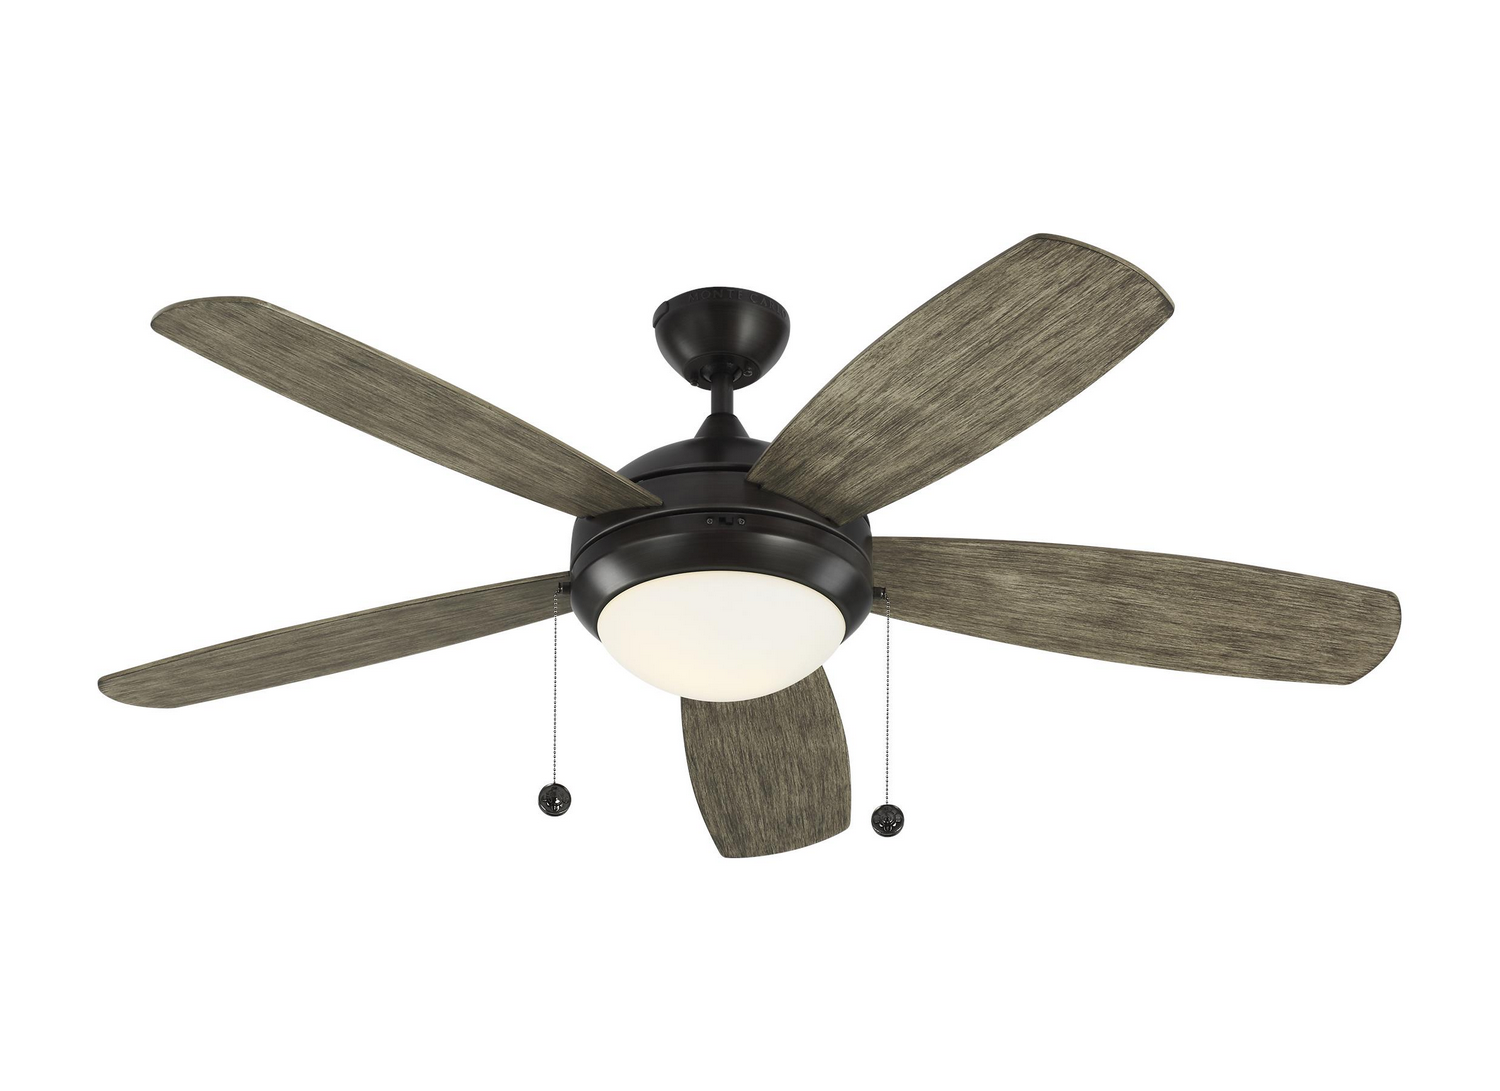 52 inchCeiling Fan from the Discus collection by Monte Carlo 5DI52AGPD